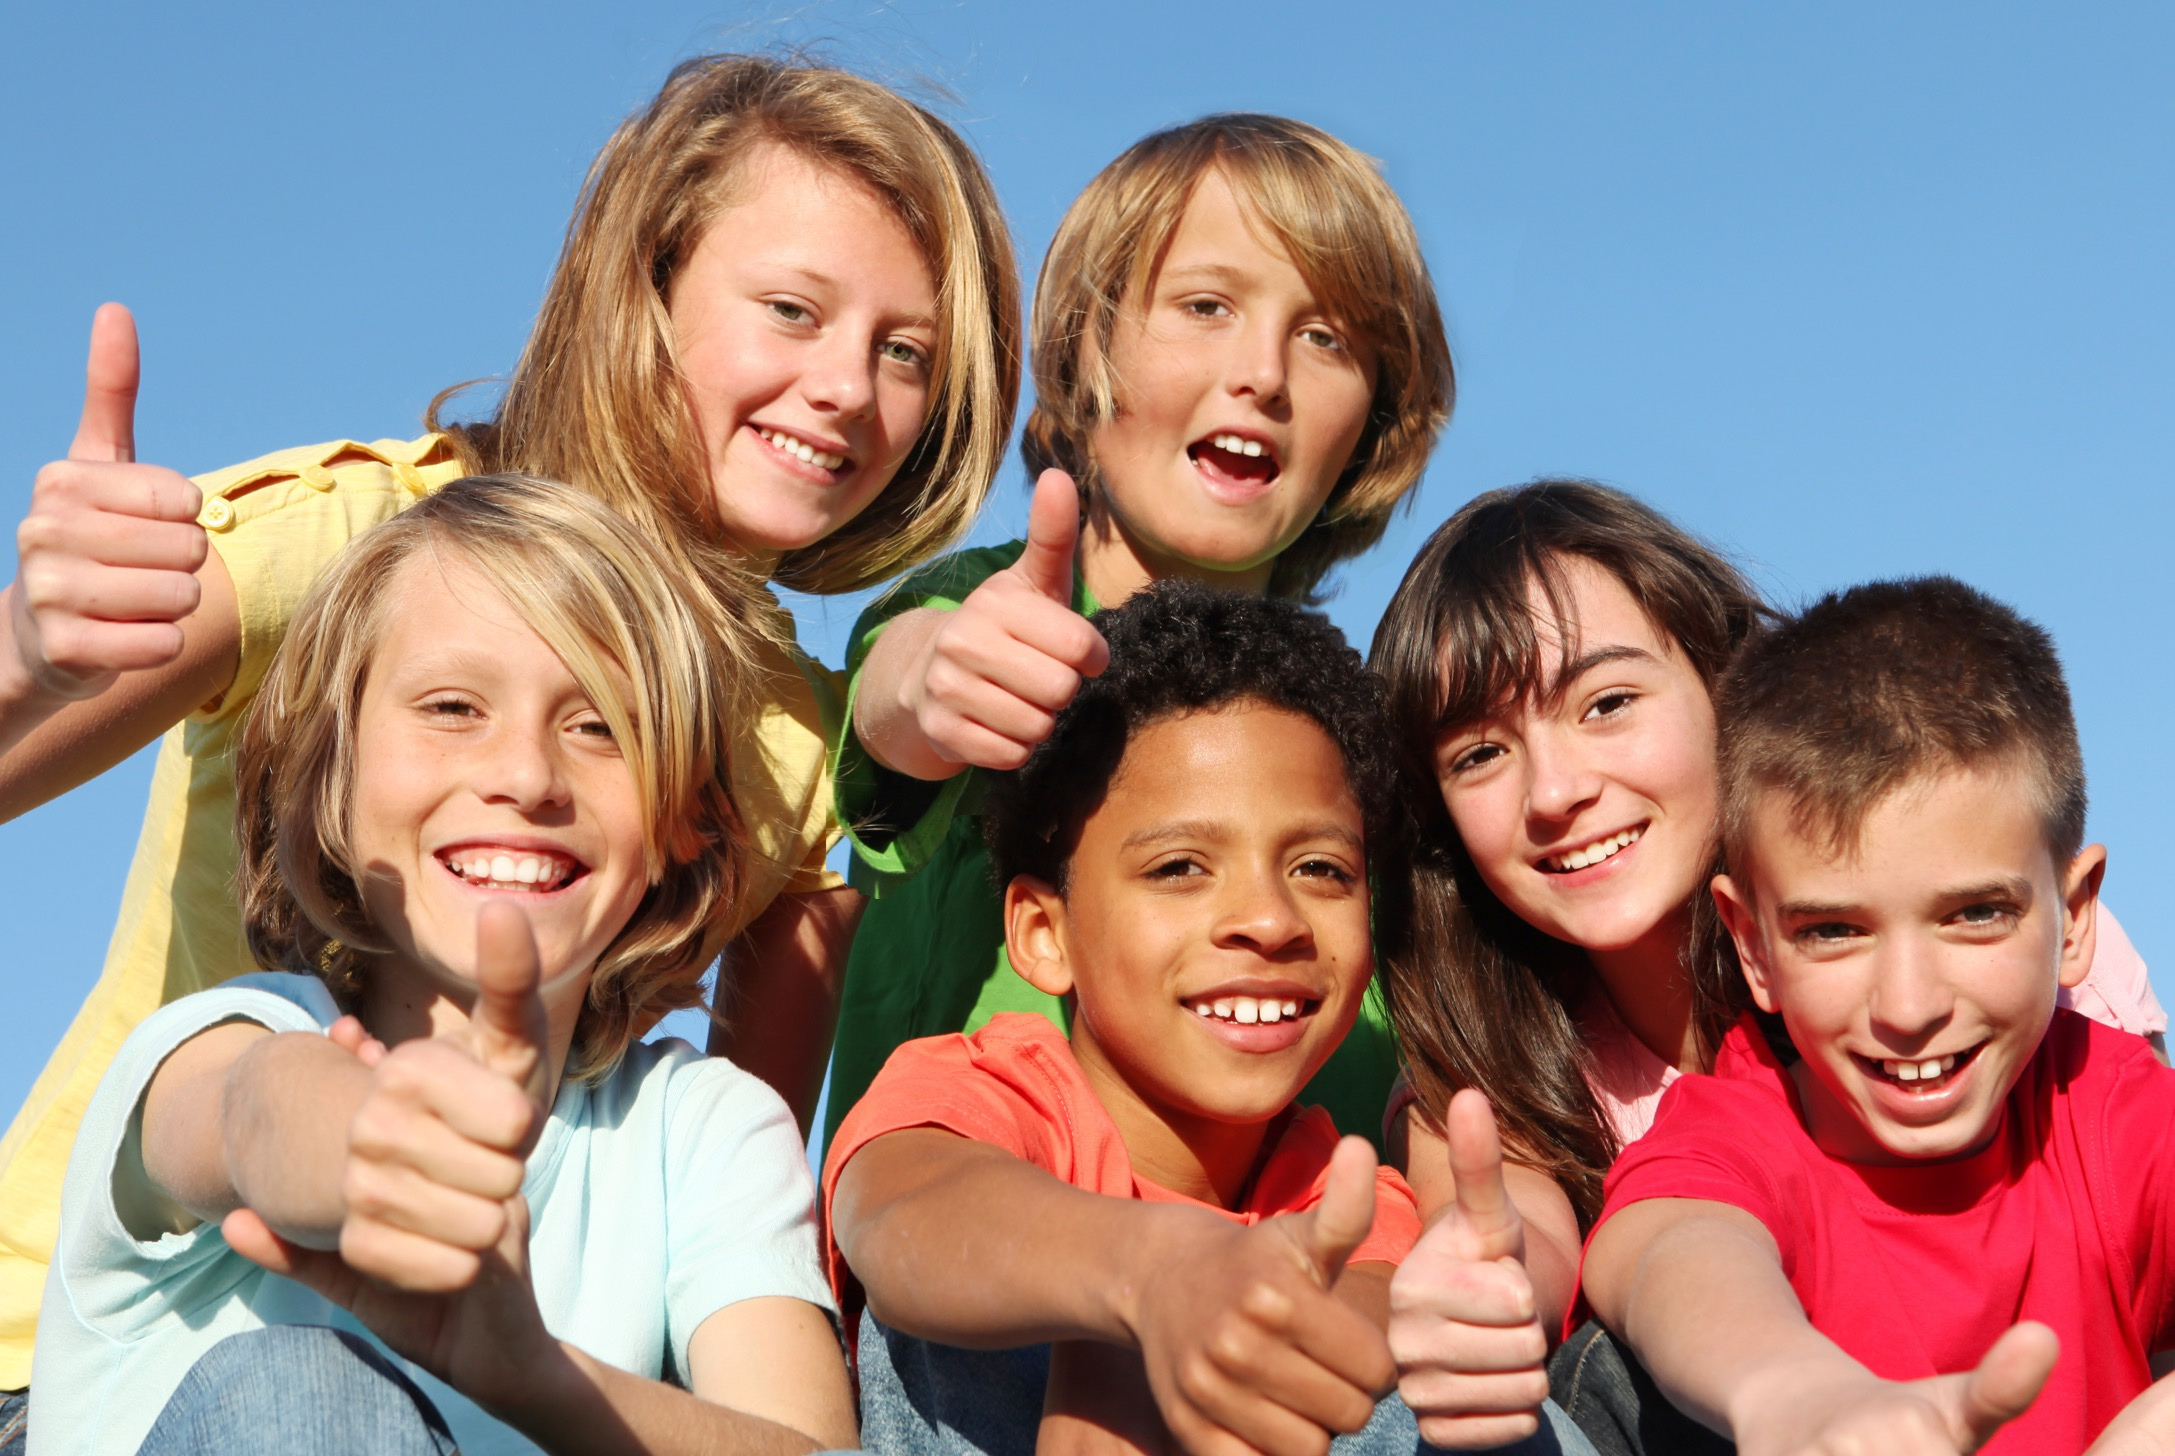 happy-kids-with-thumbs-up-